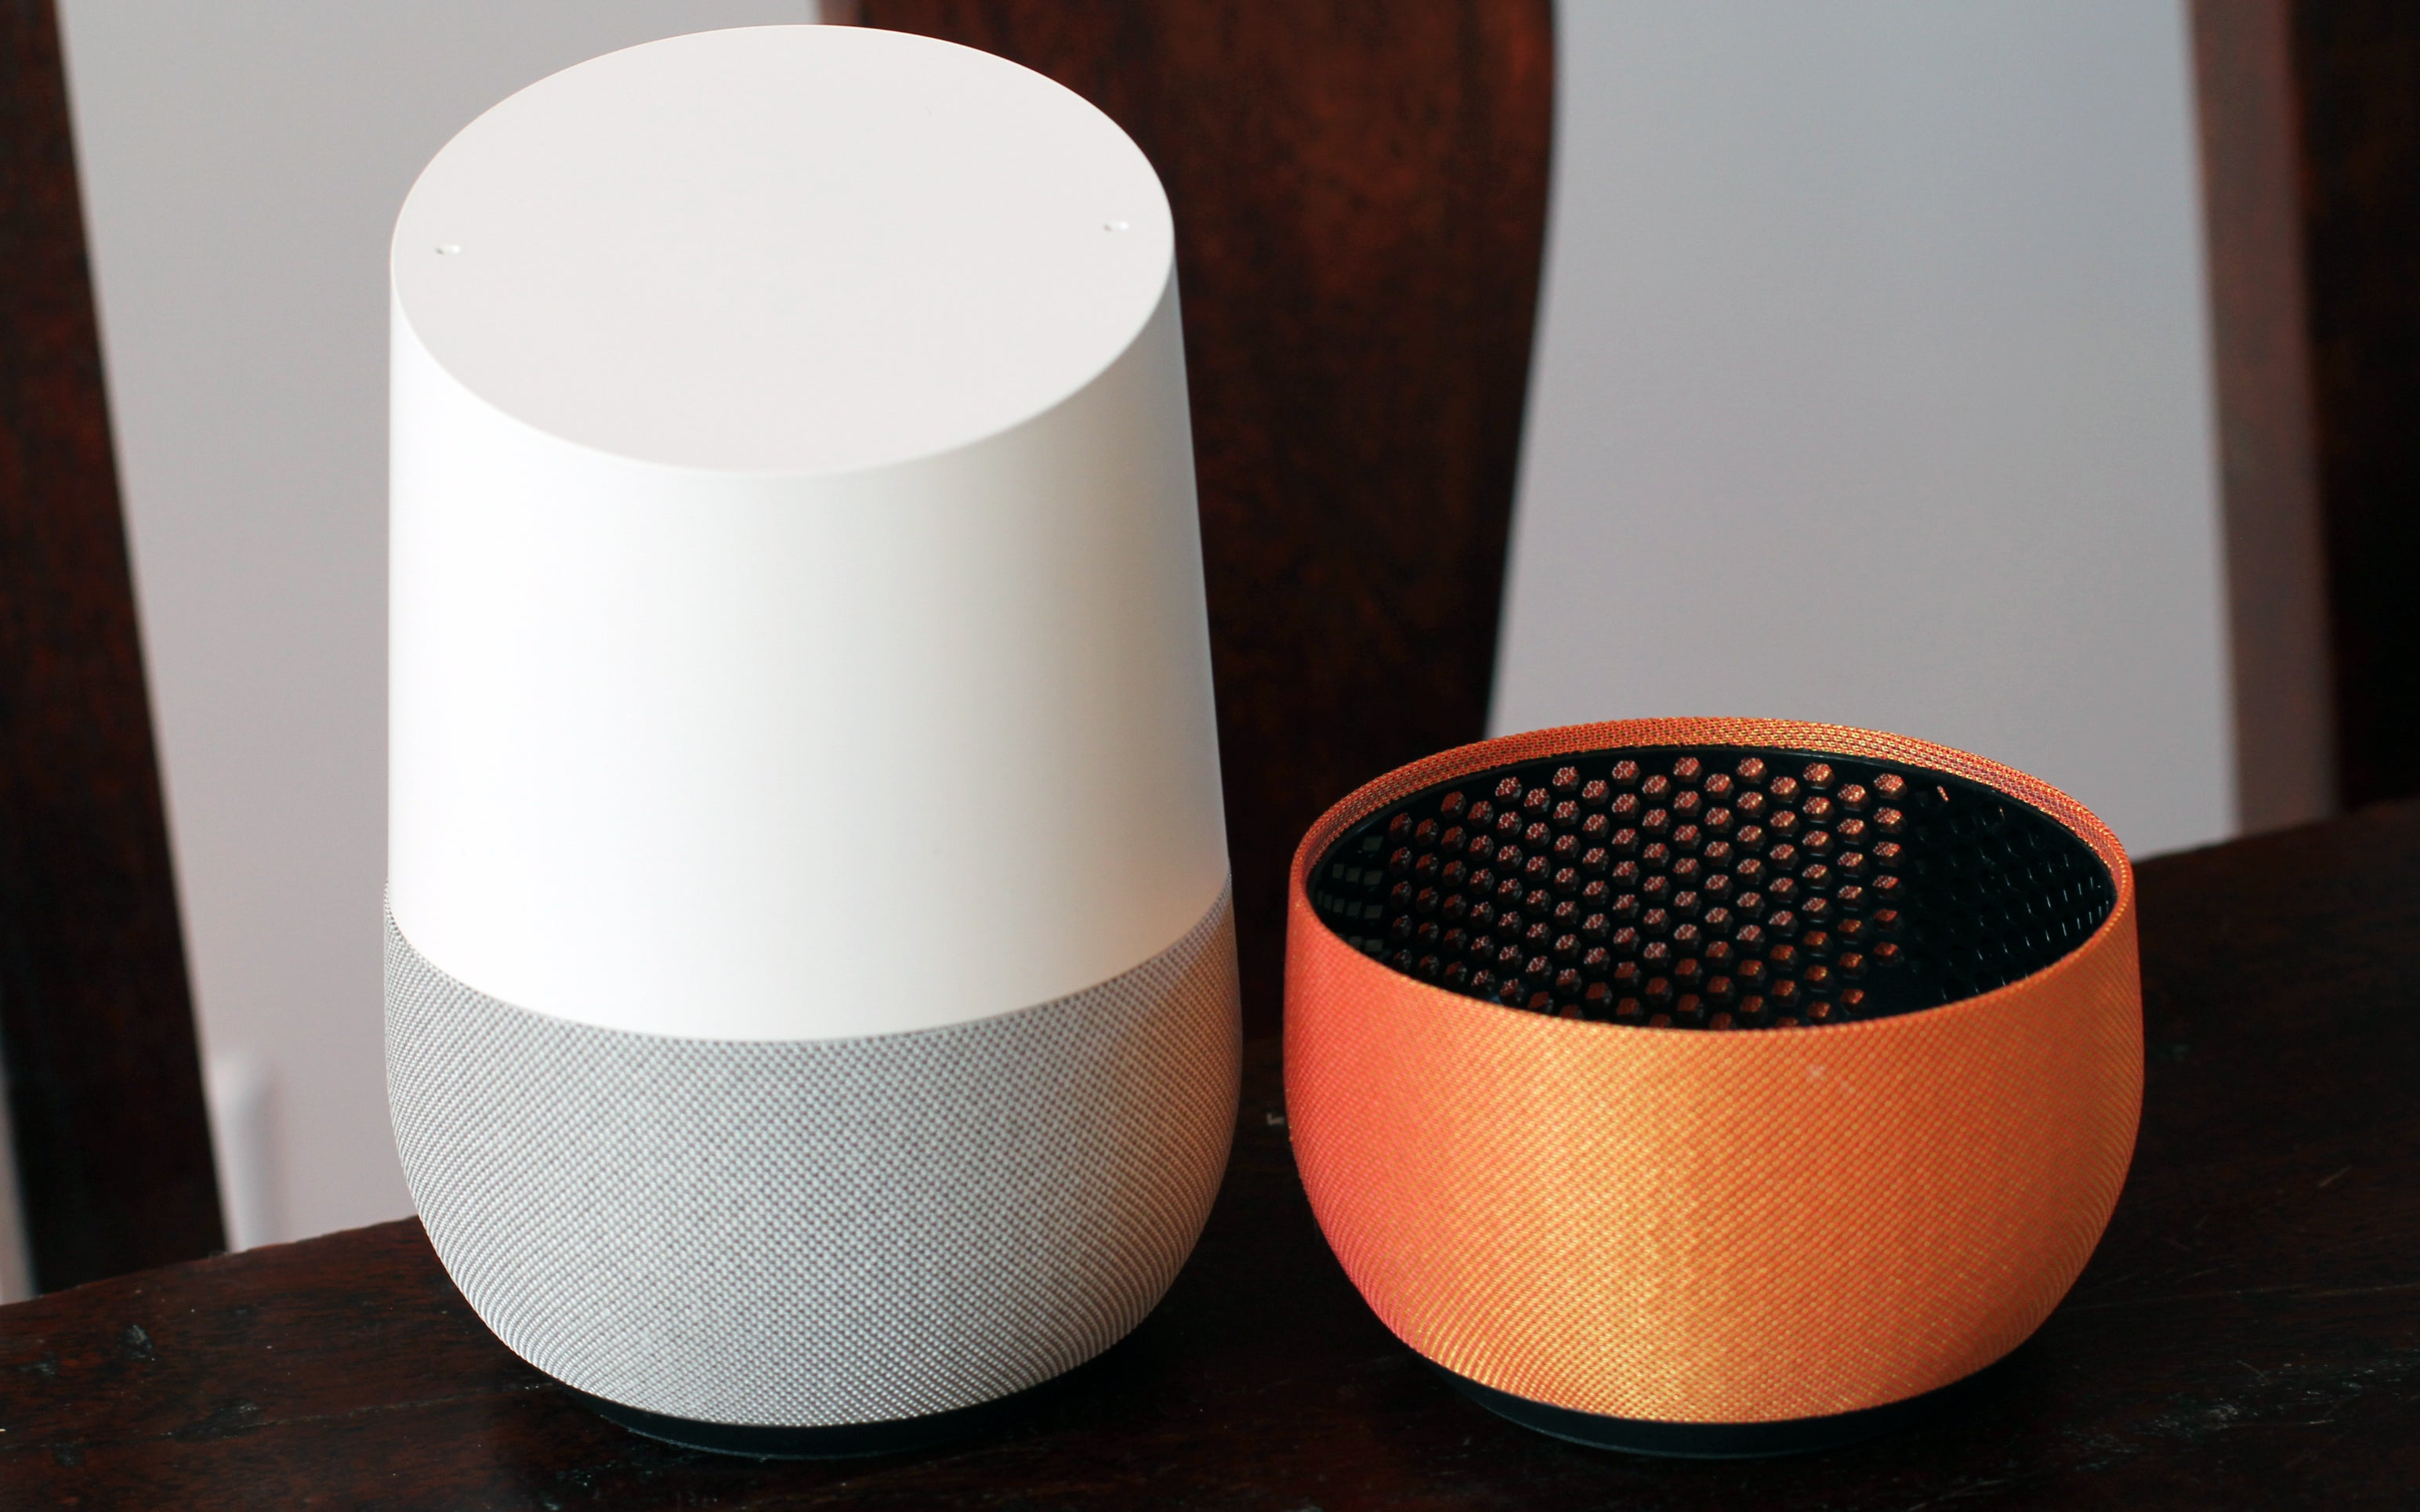 Merveilleux Google Home Fabric Bases